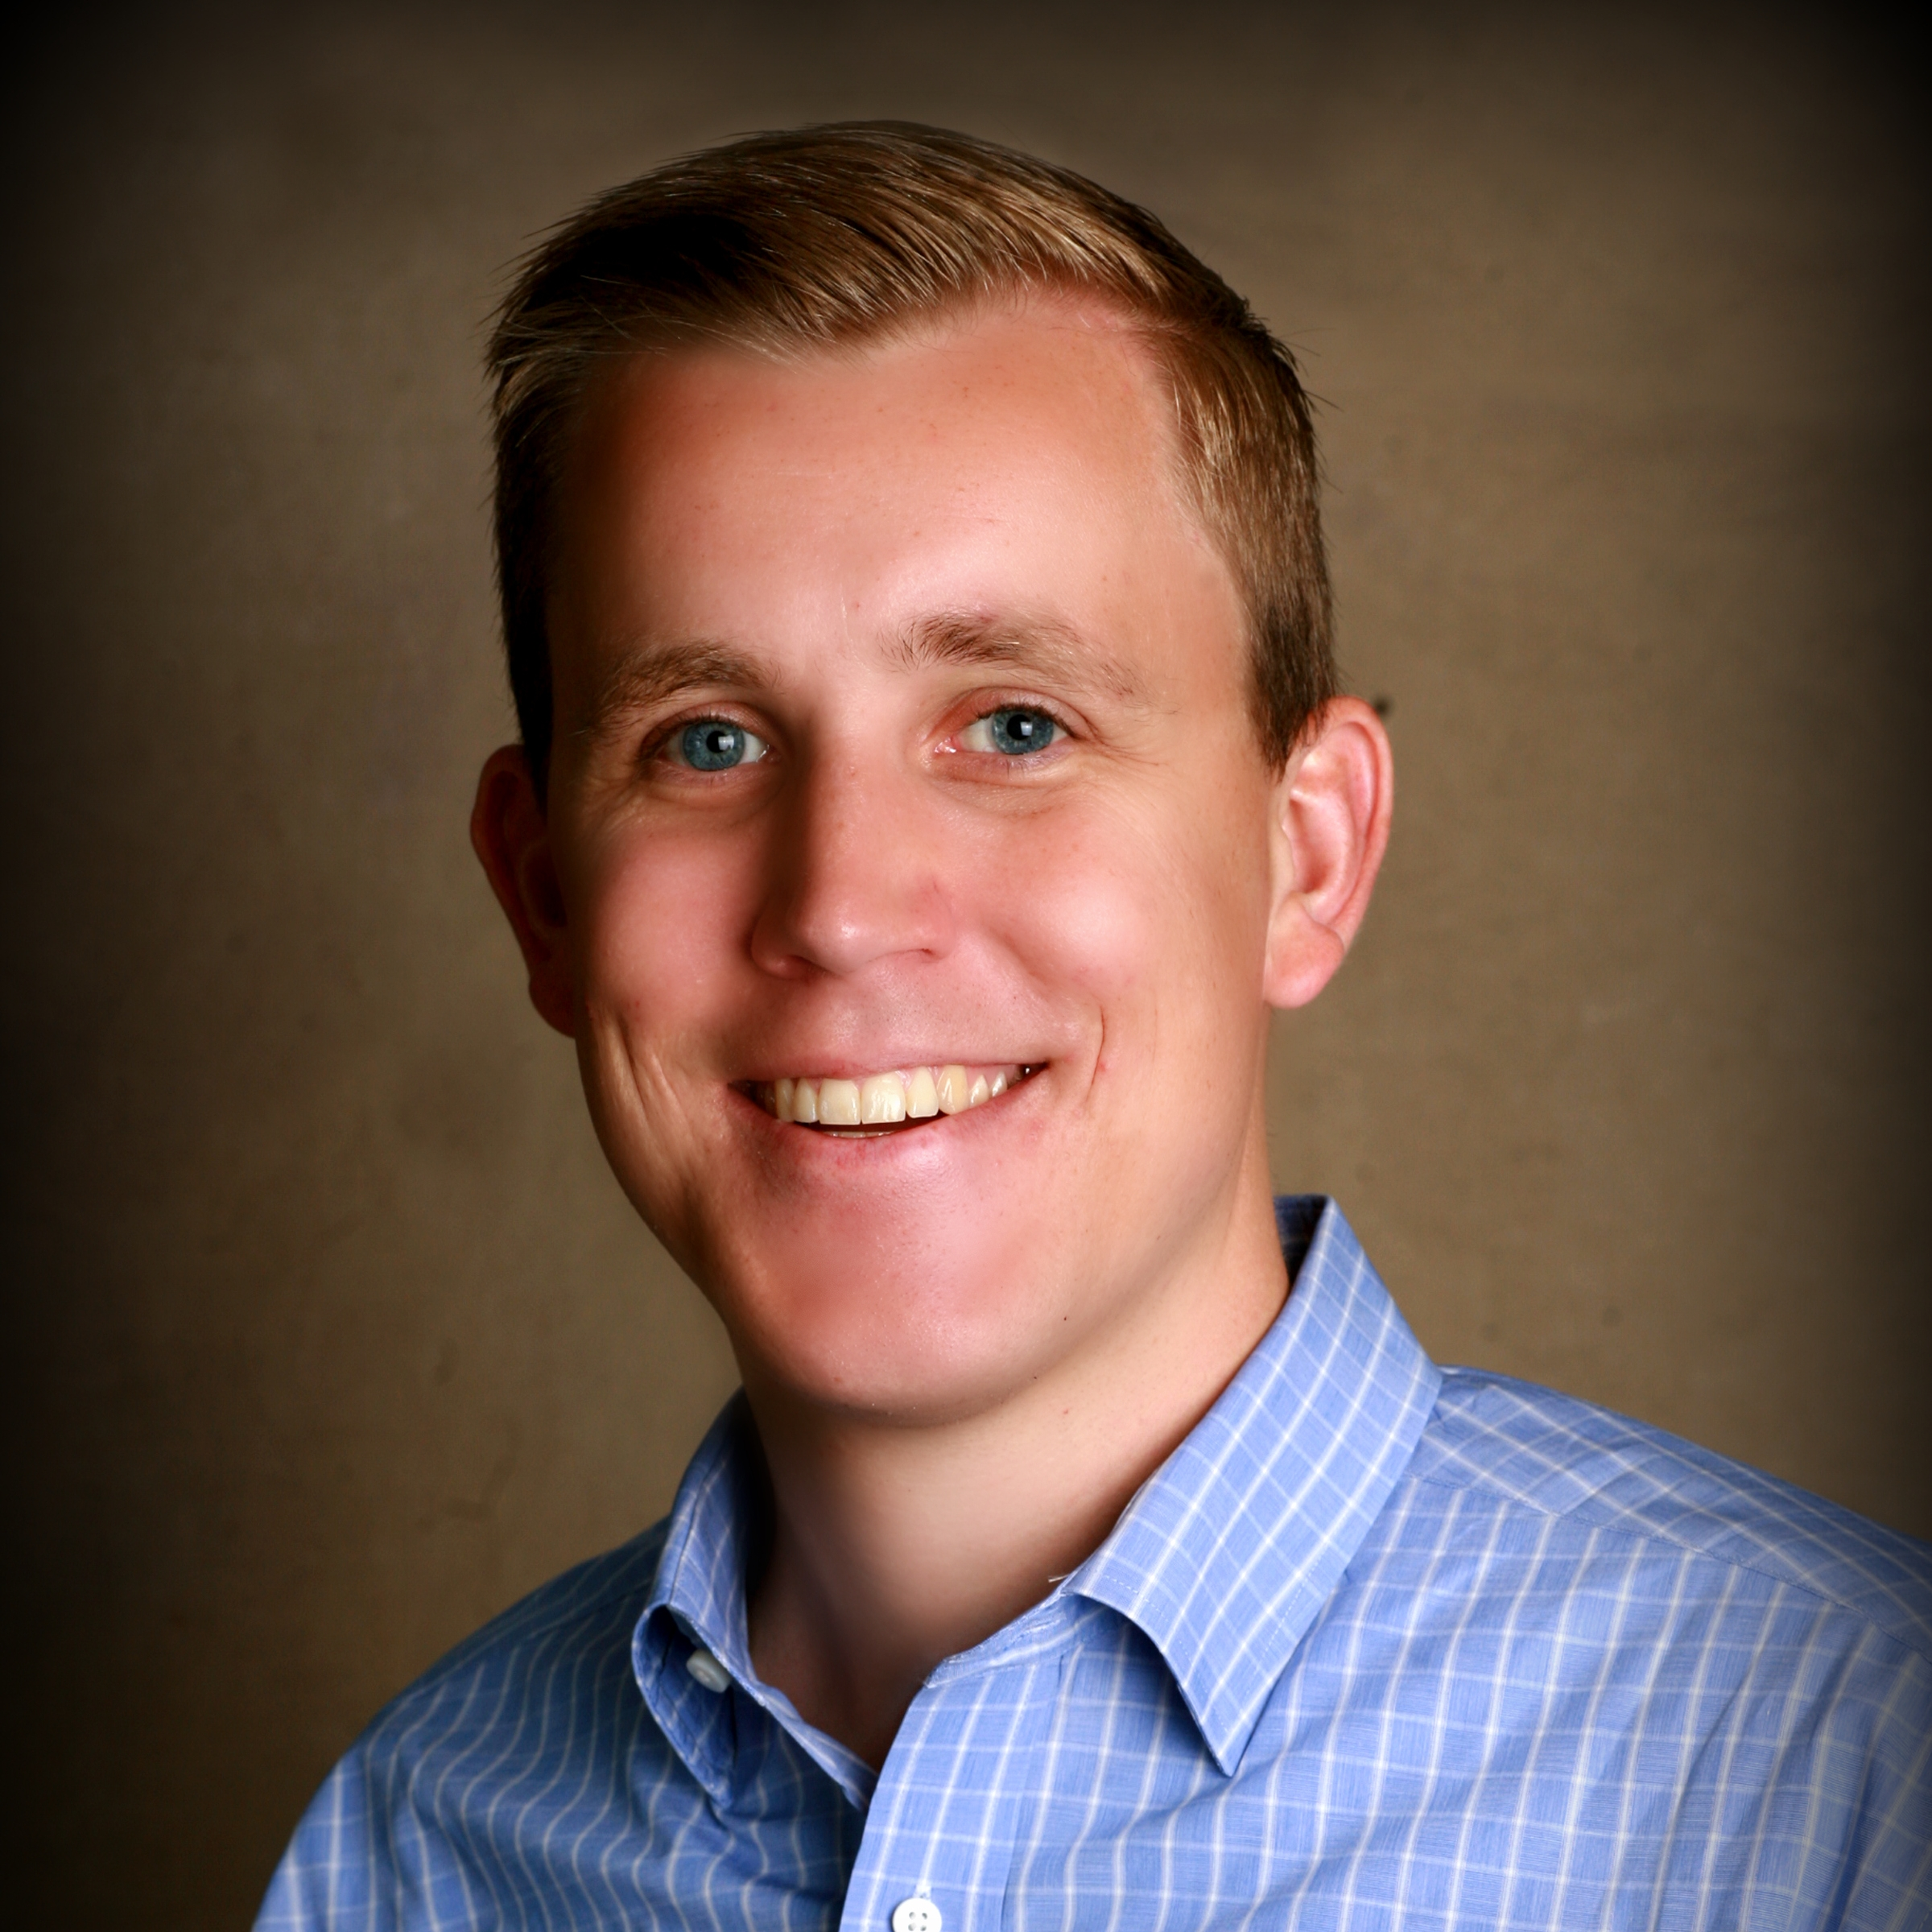 Ross Squires, President   Ross is a former Wisconsin FBLA State & National FBLA officer serving as President at both levels. He currently works as a Vice President for Cobb Strecker Dunphy & Zimmermann, Inc., a leading provider of construction risk management services.